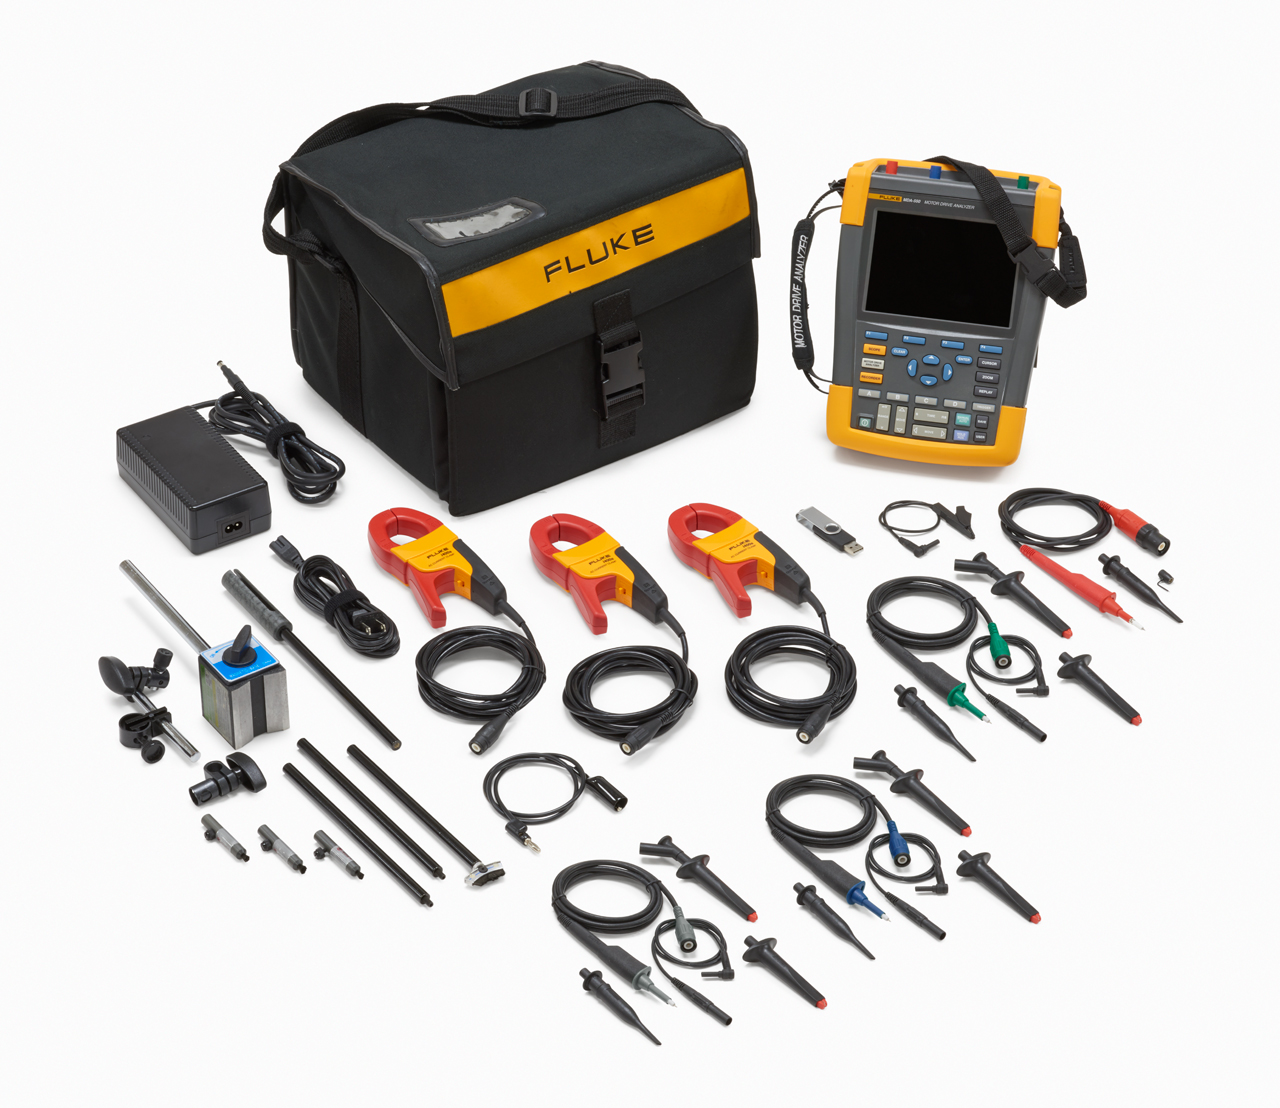 FLUKE MDA-550 - Motor Drive Analyzer 550, 4-channel color, PRO